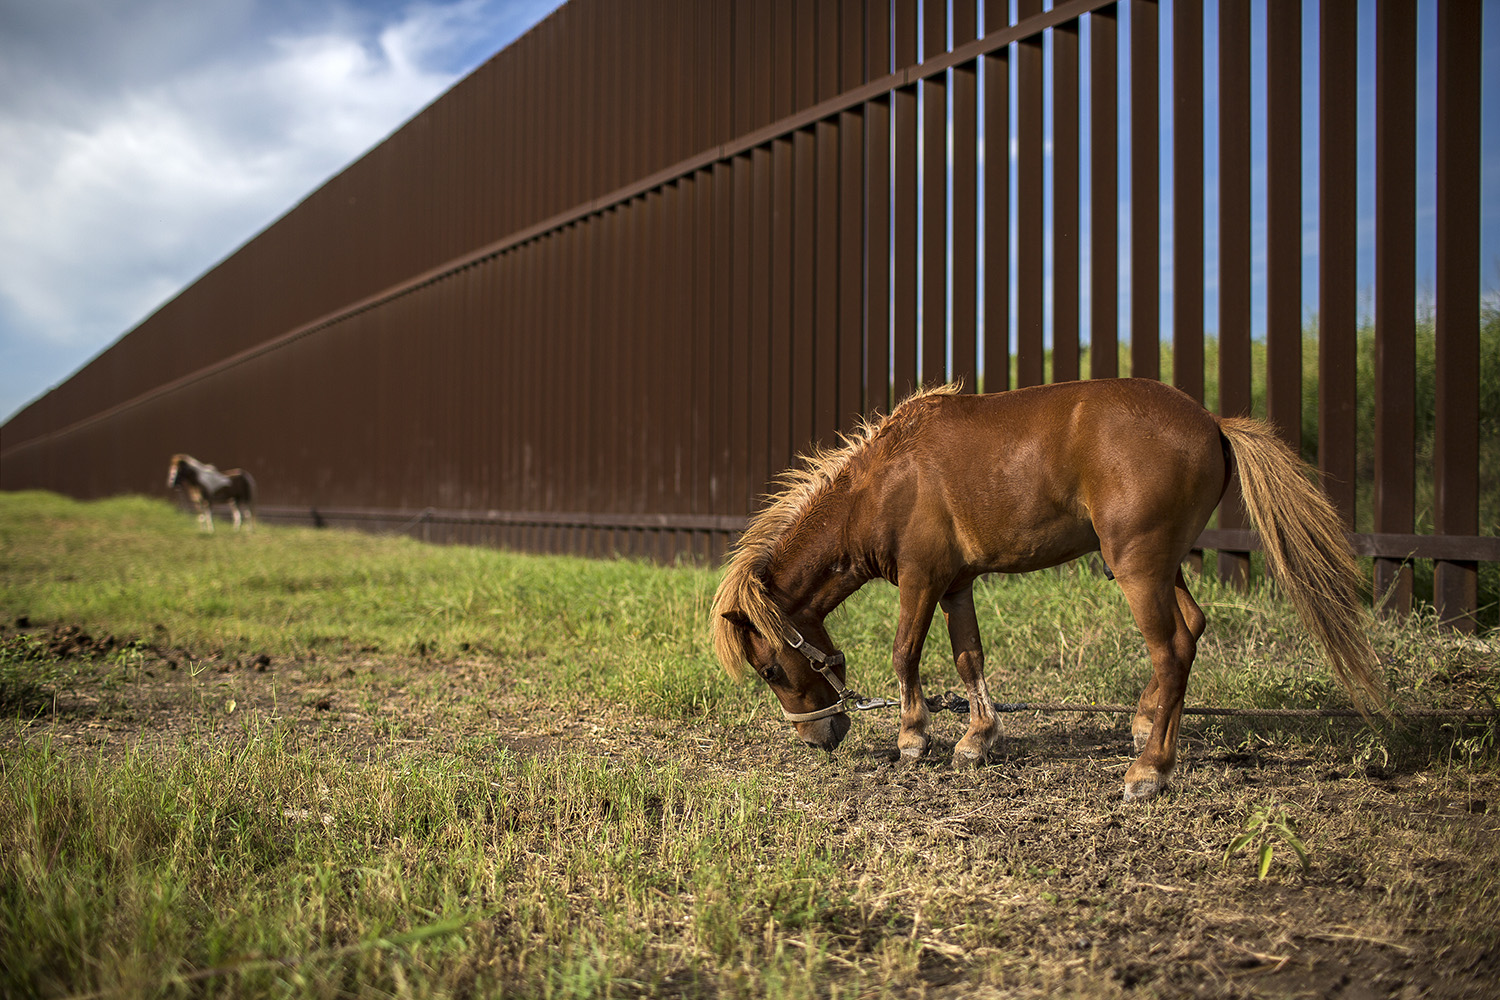 Ponies graze next to the border fence in Cameron County, Texas. The federal government seized residents' property across the Rio Grande Valley to build the fence a decade ago.